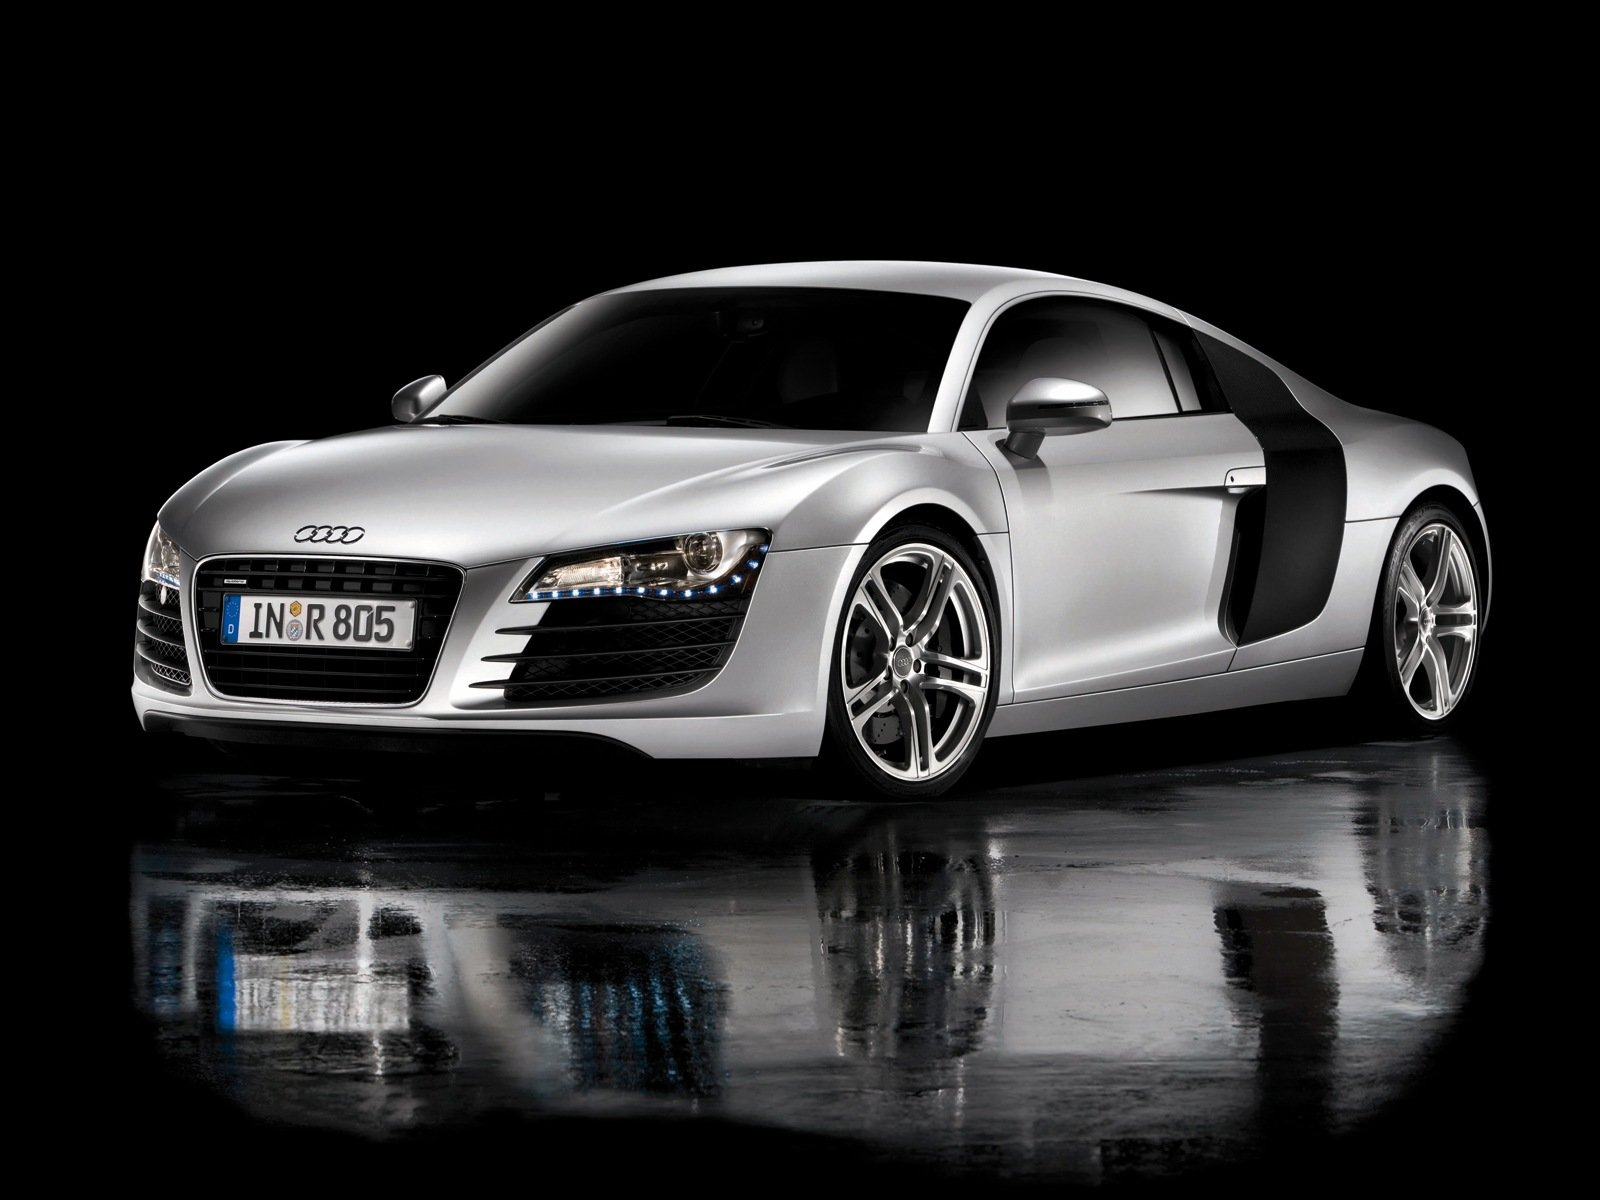 Latest World Of Cars Audi R8 Images Free Download